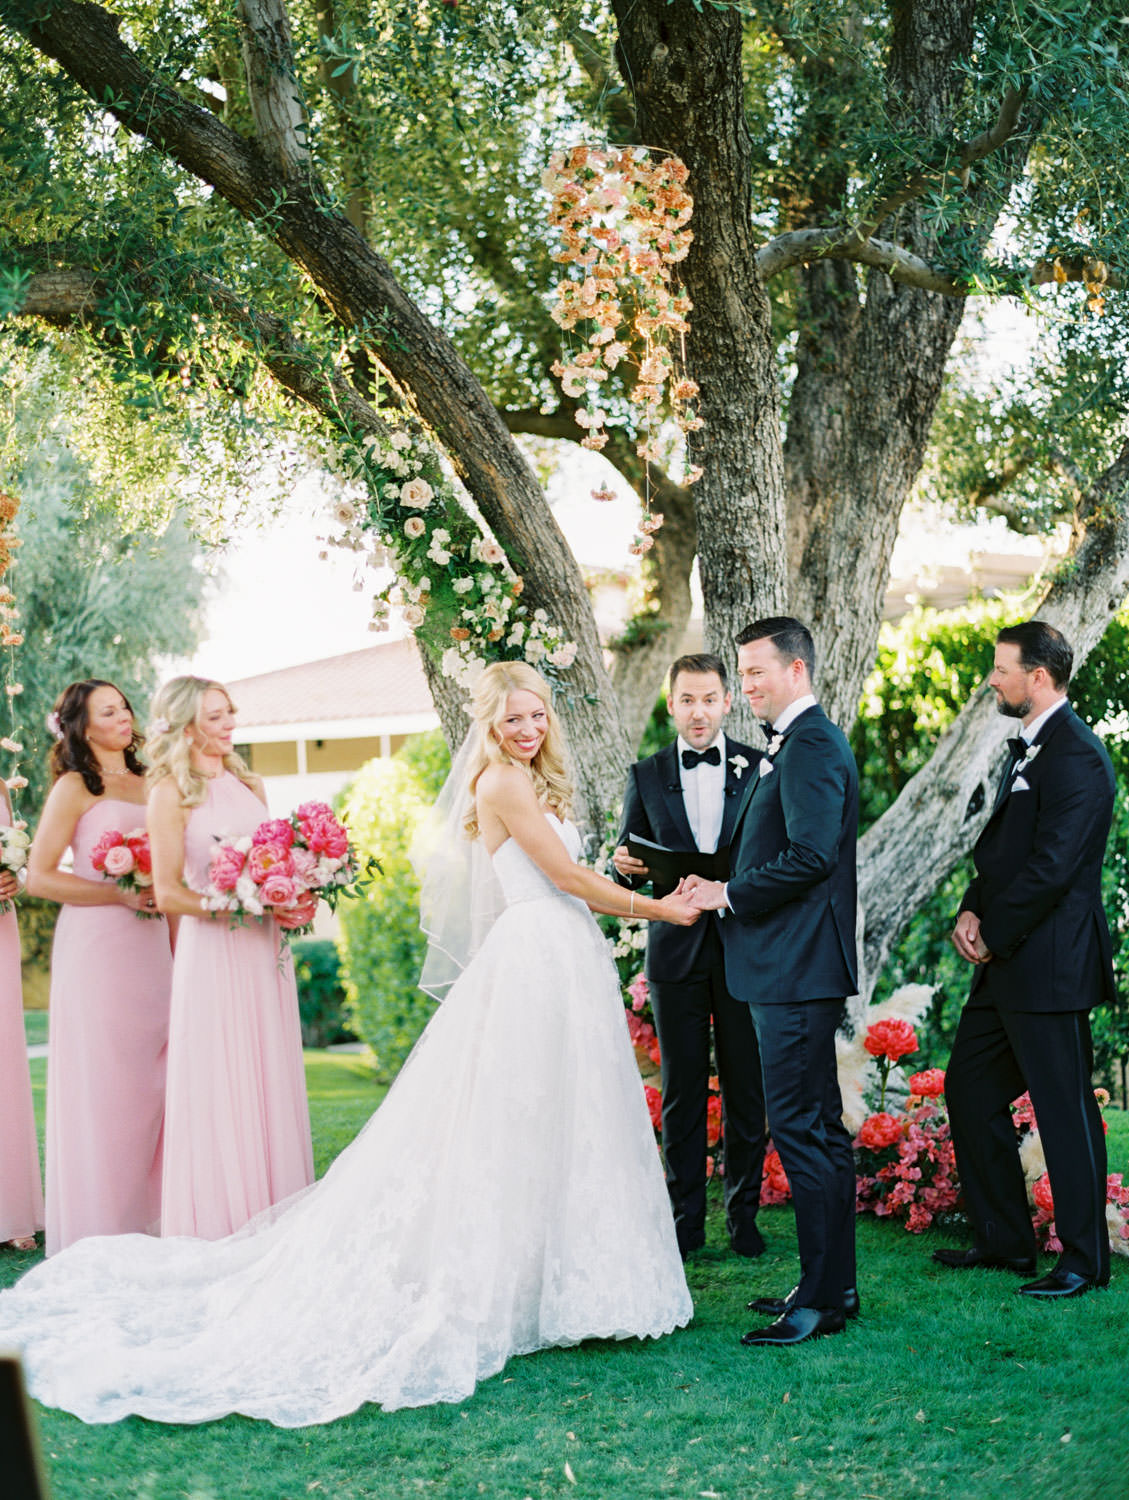 Bride and groom smiling during the ceremony. Large tree with hanging floral arrangements and pink peonies and pampas grass spiraling up the trunk. Miramonte Resort ceremony on Miramonte Green. Film photography by Cavin Elizabeth.